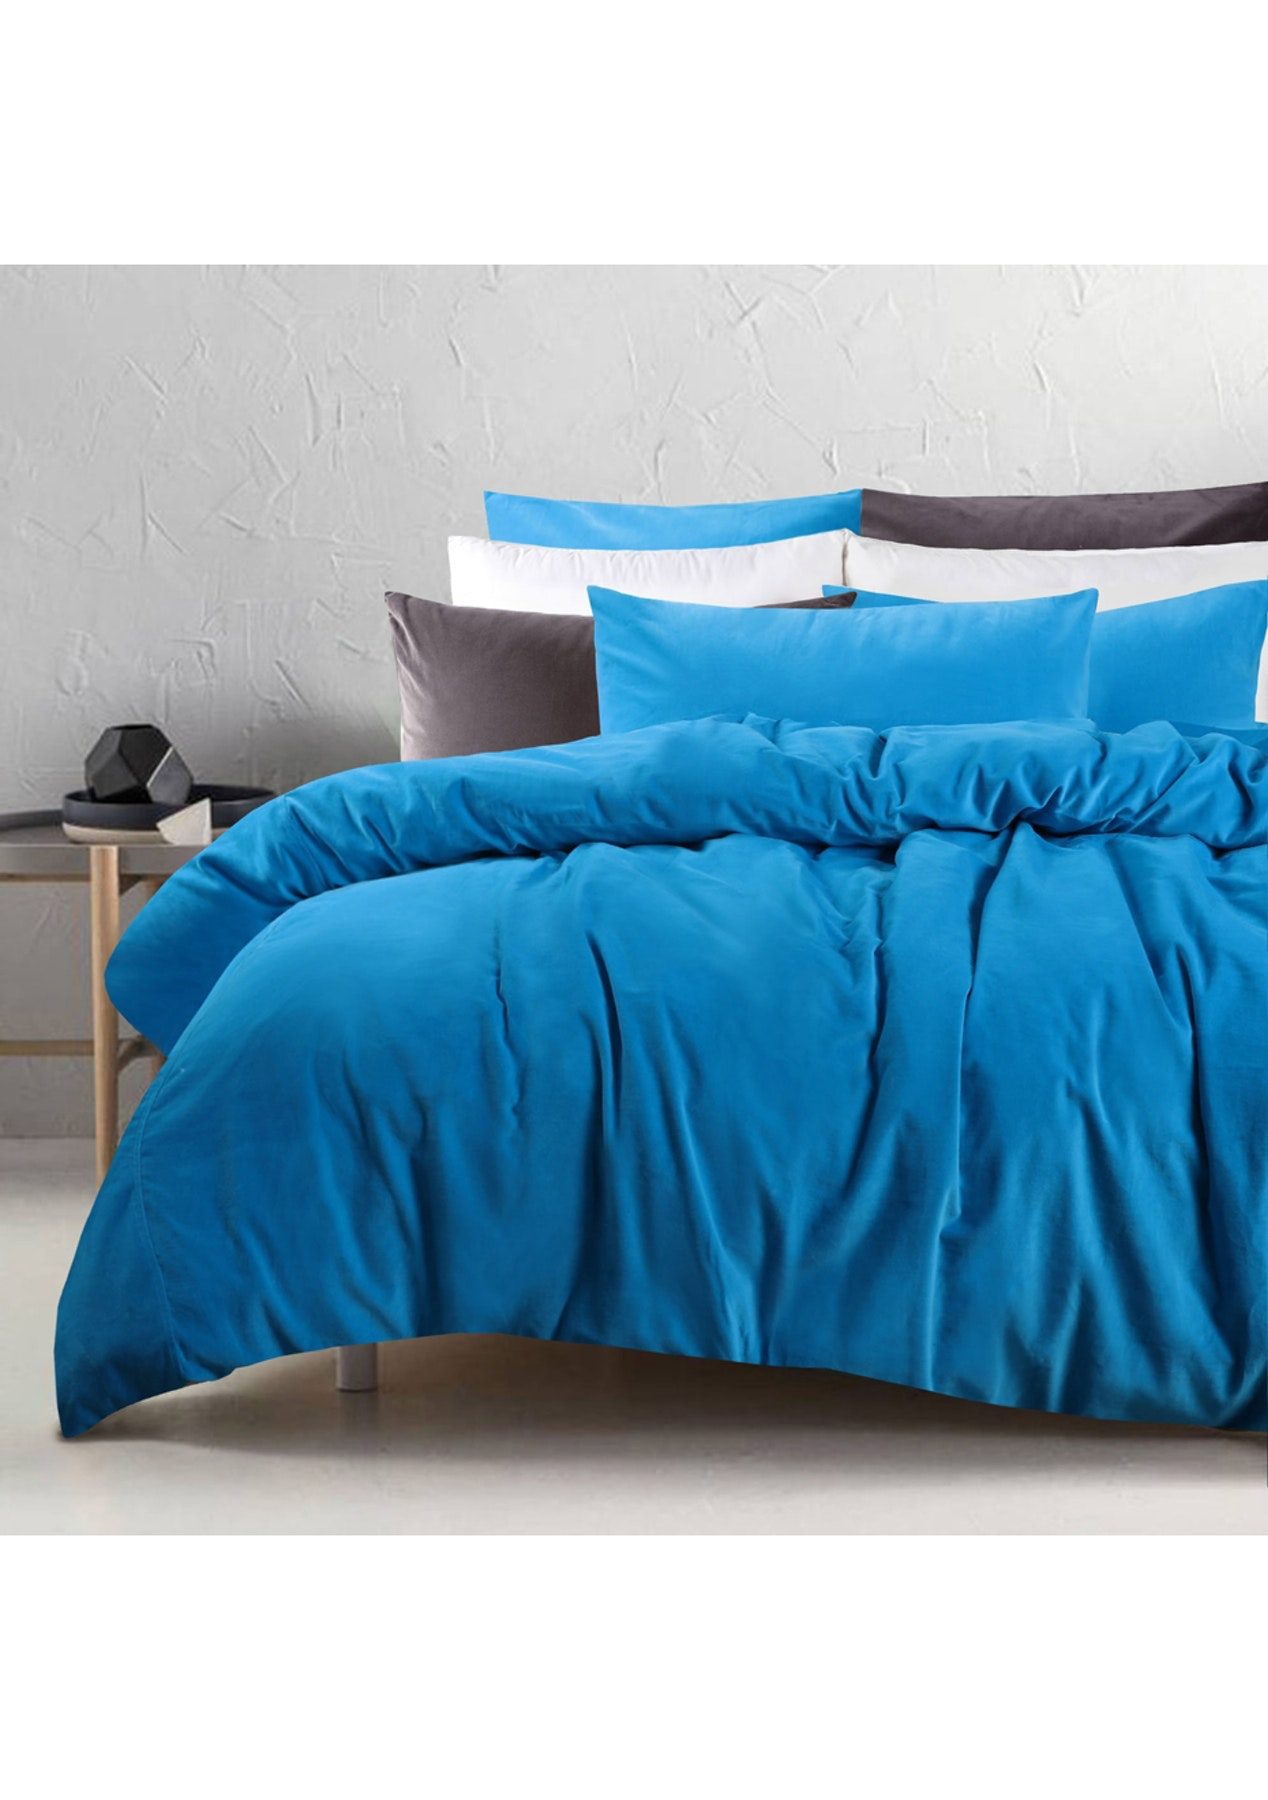 comforter bedroom bed soft comforters republique and coverlets velvet bedding design